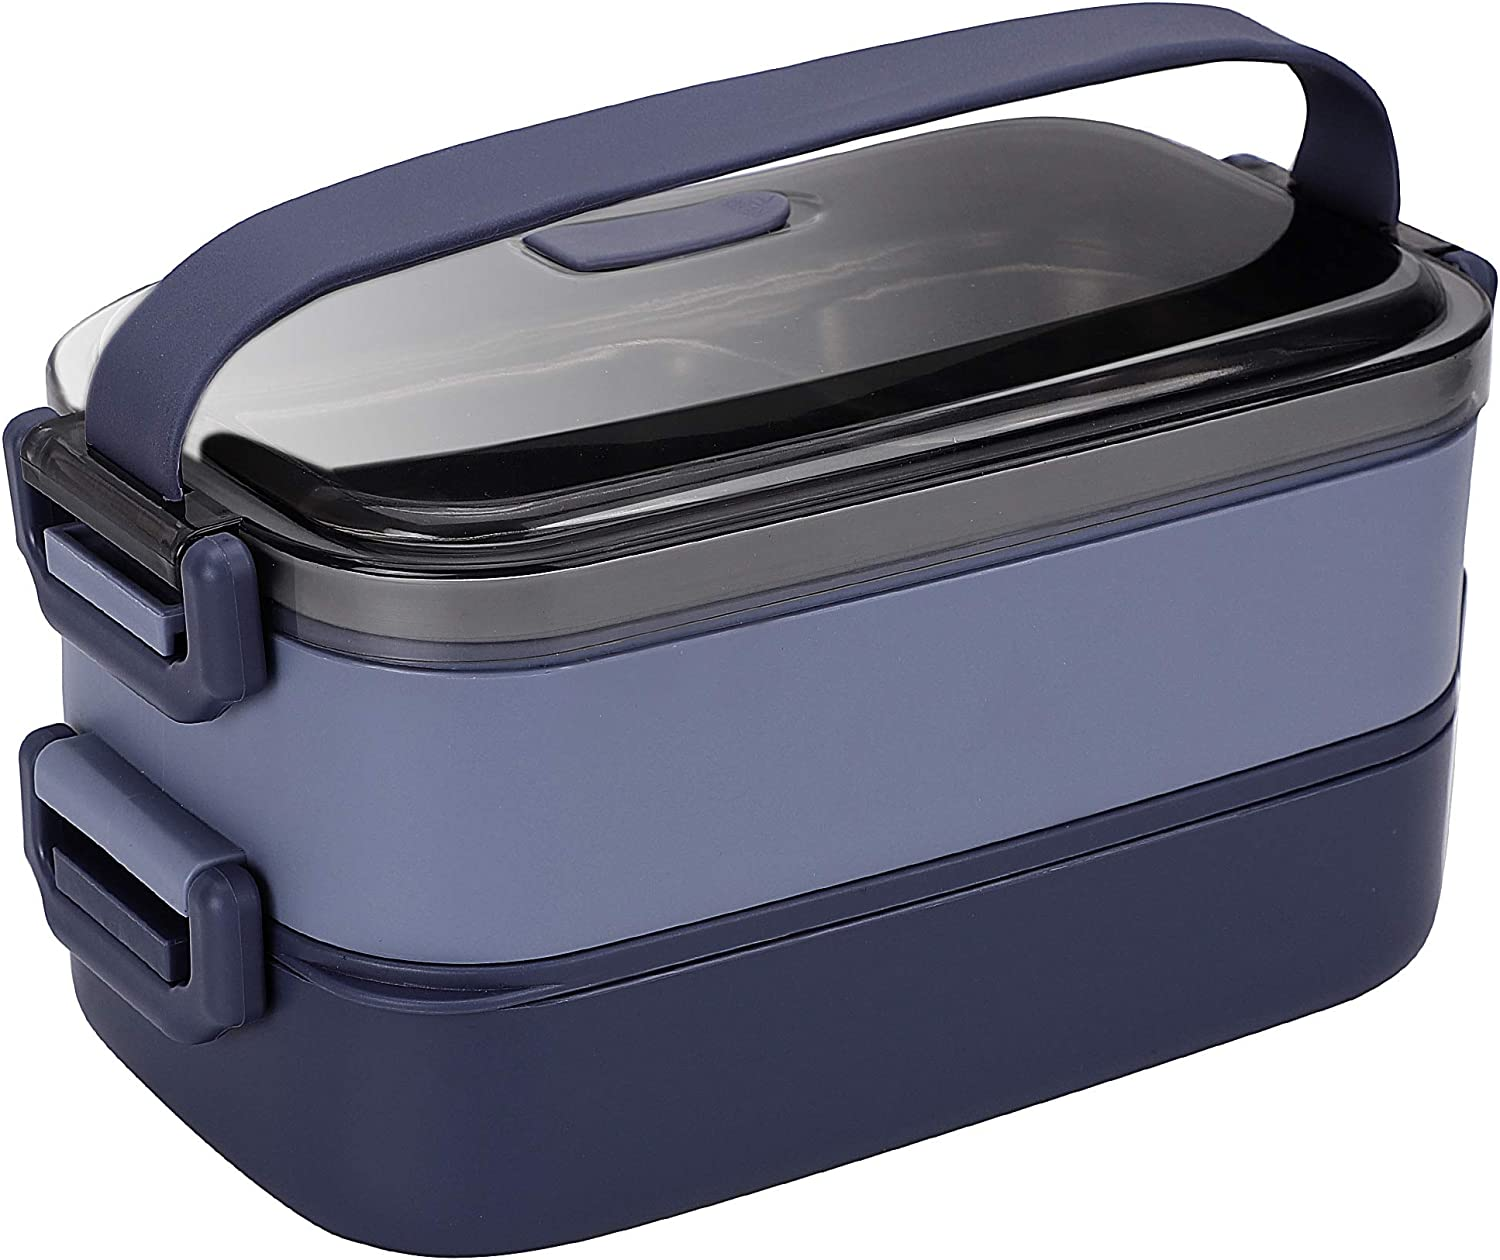 304 Stainless Steel Bento Lunch Box, Leakproof Stackable 2-Tier Design, 2-In-1 Divided Compartments, Large Capacity Lunch Food Salad Storage Container with Cutlery Set for Adults Outdoor&Office Blue